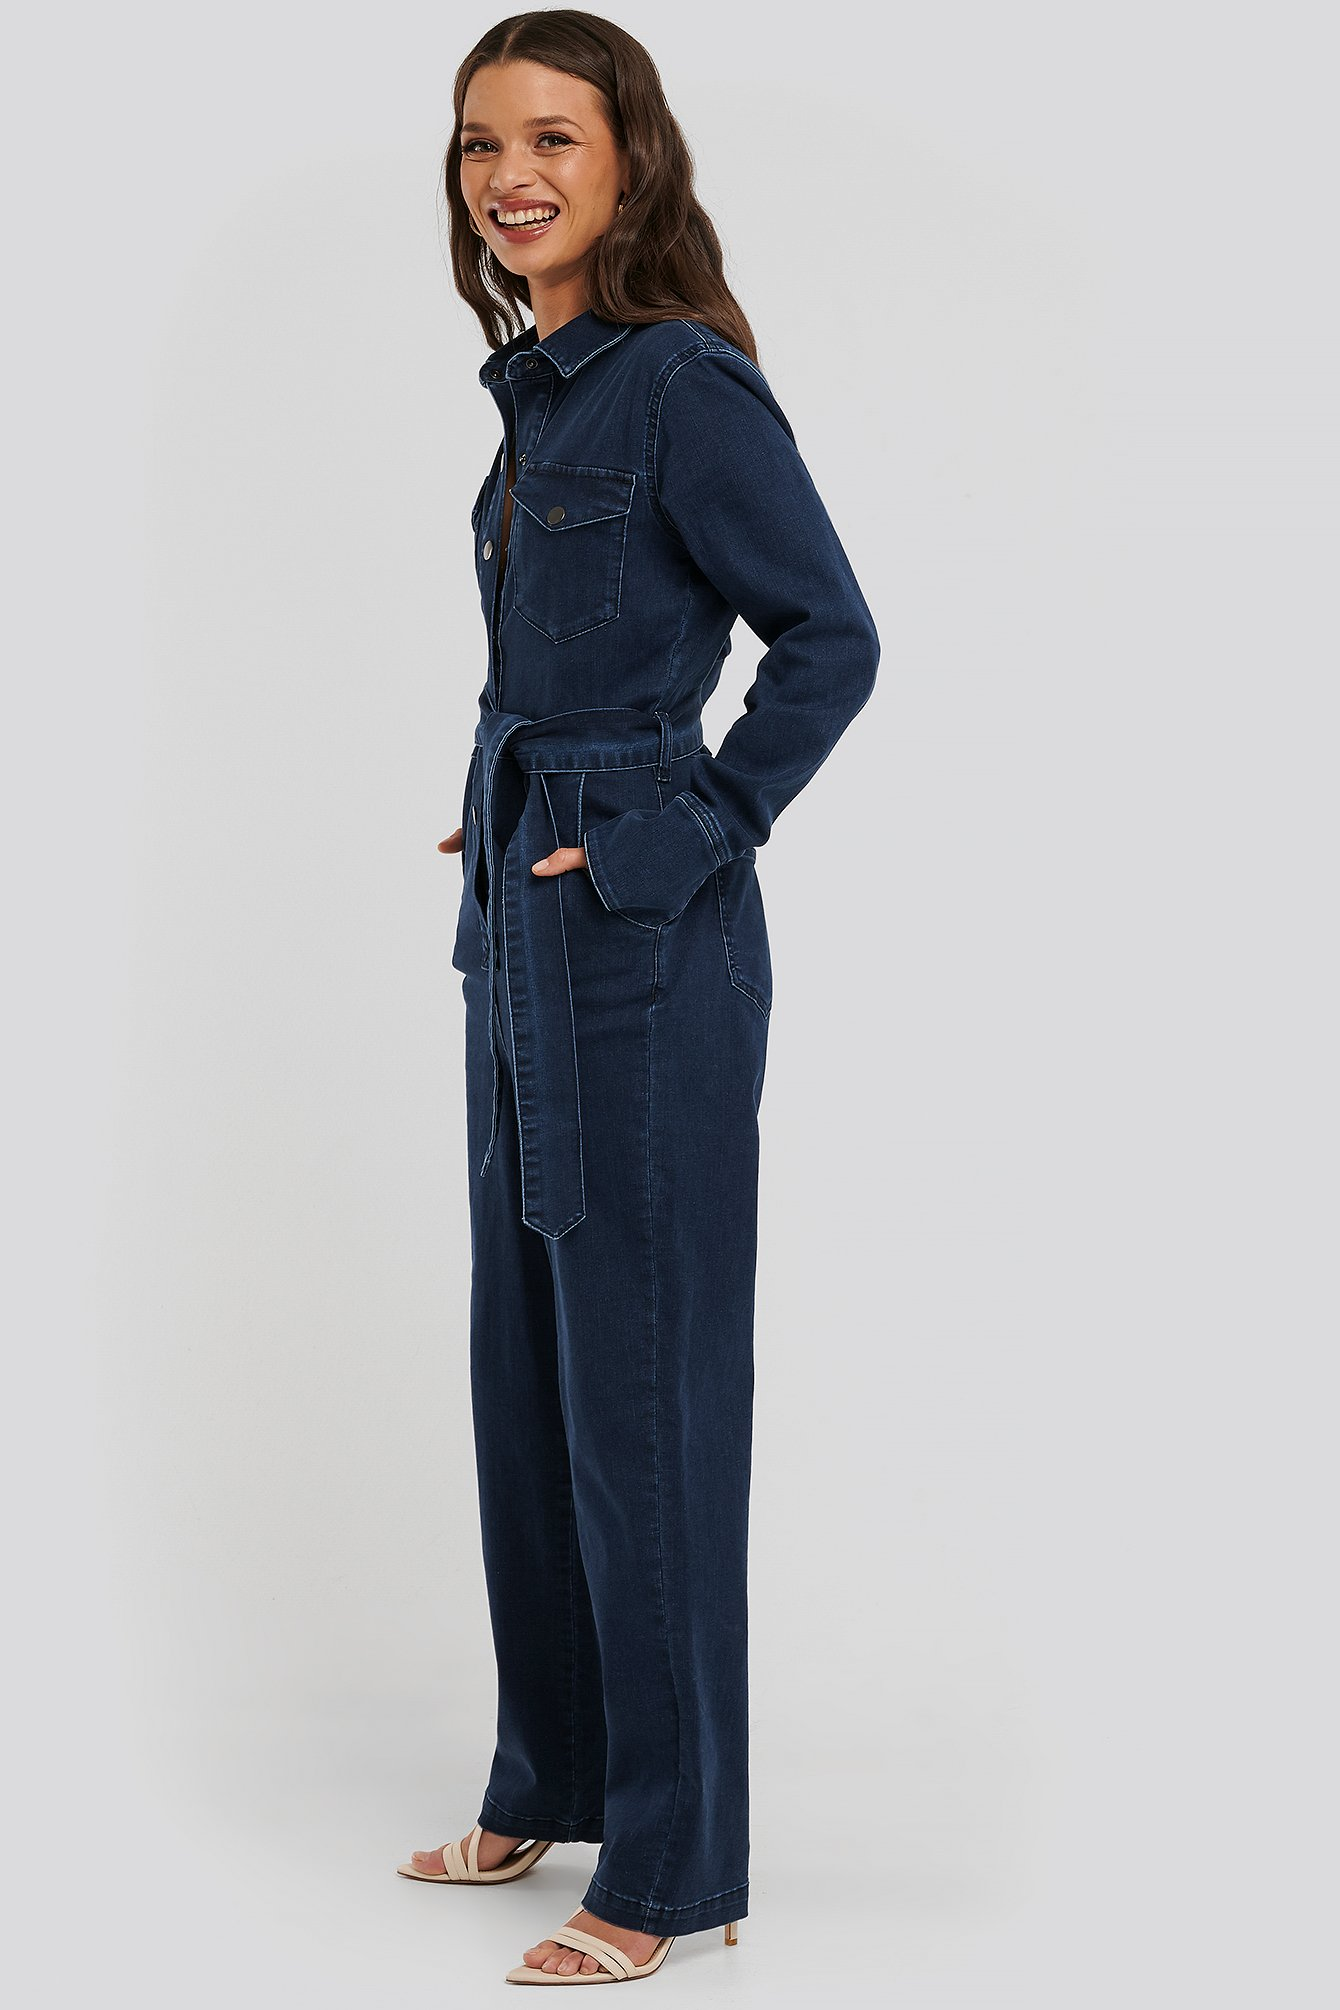 snøløs x na-kd -  Front Pocket Denim Jumpsuit - Blue